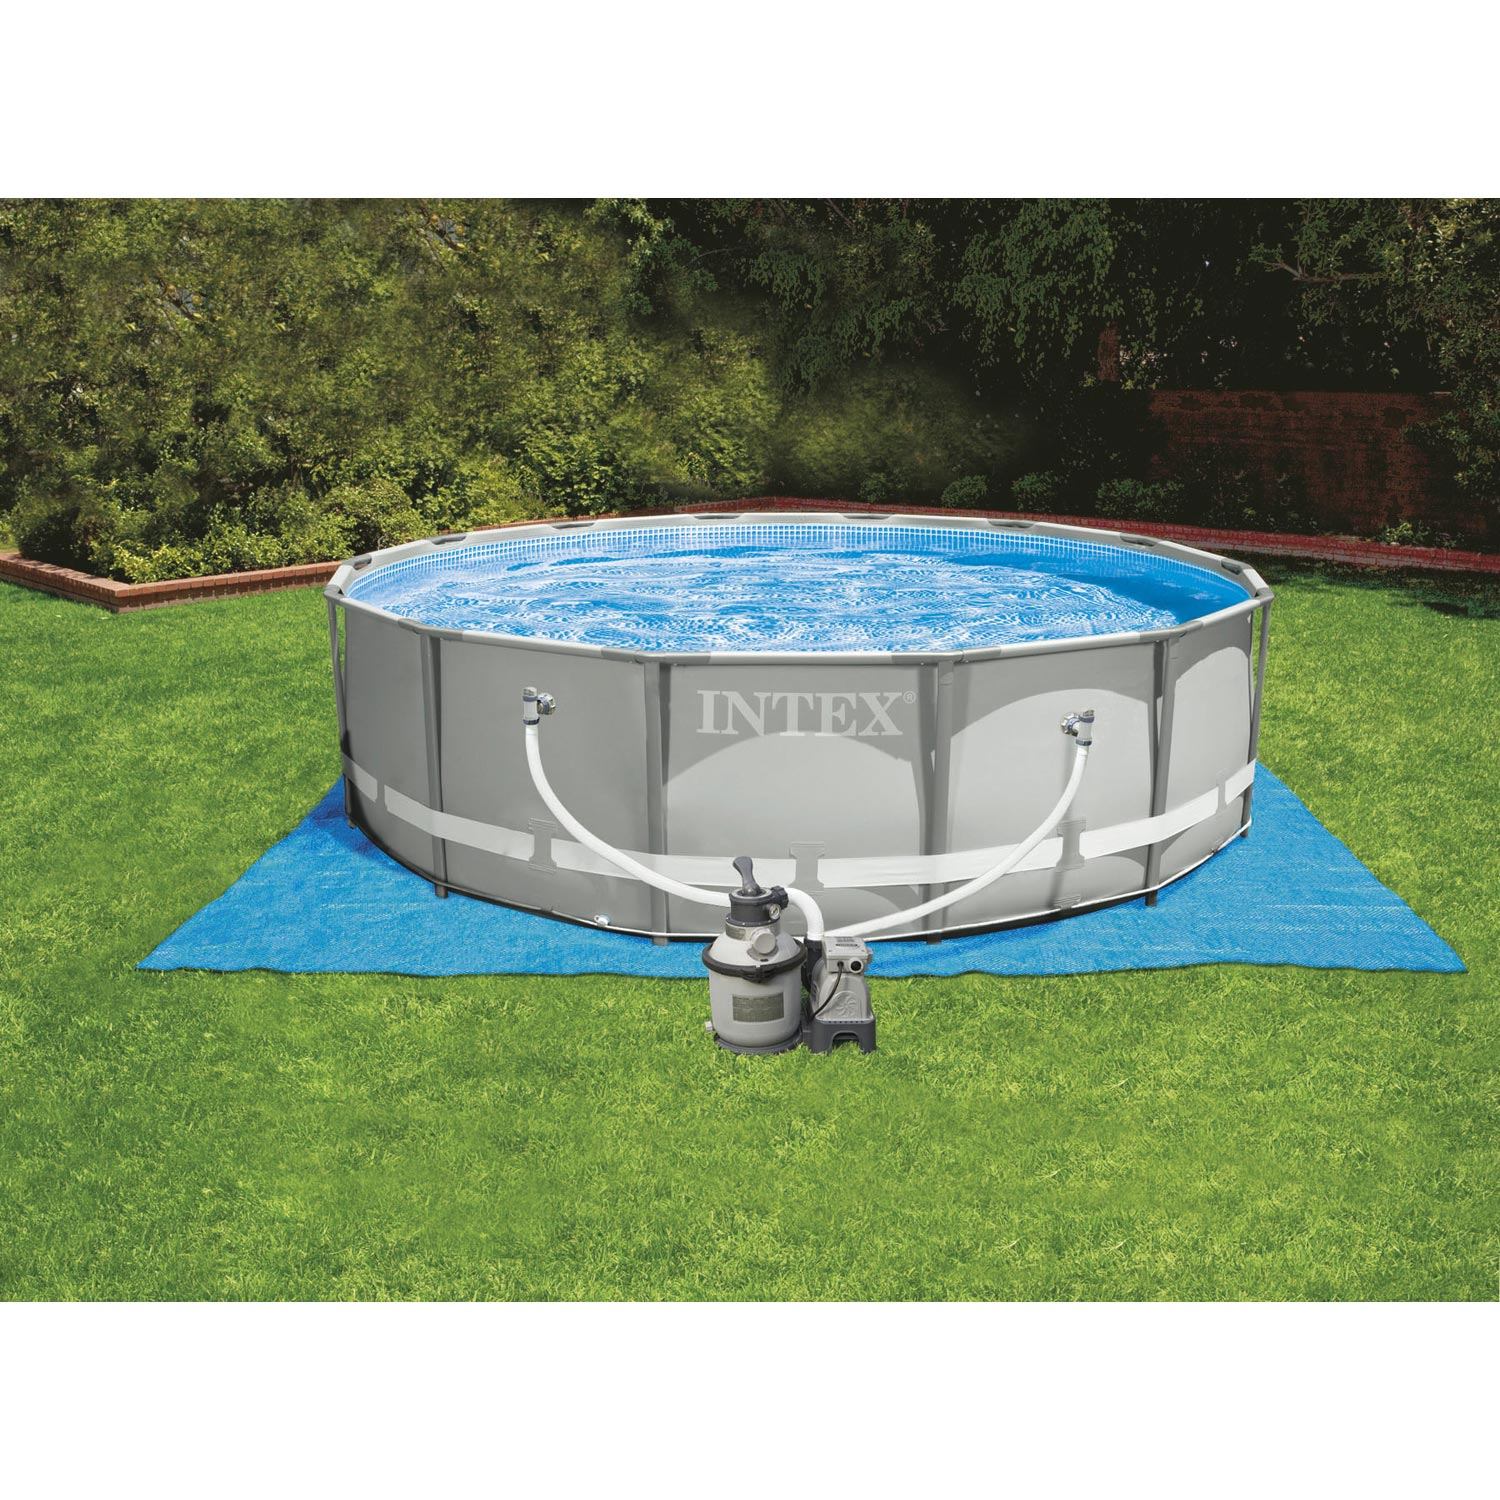 Piscine hors sol autoportante tubulaire ultra frame intex for Piscine auchan hors sol